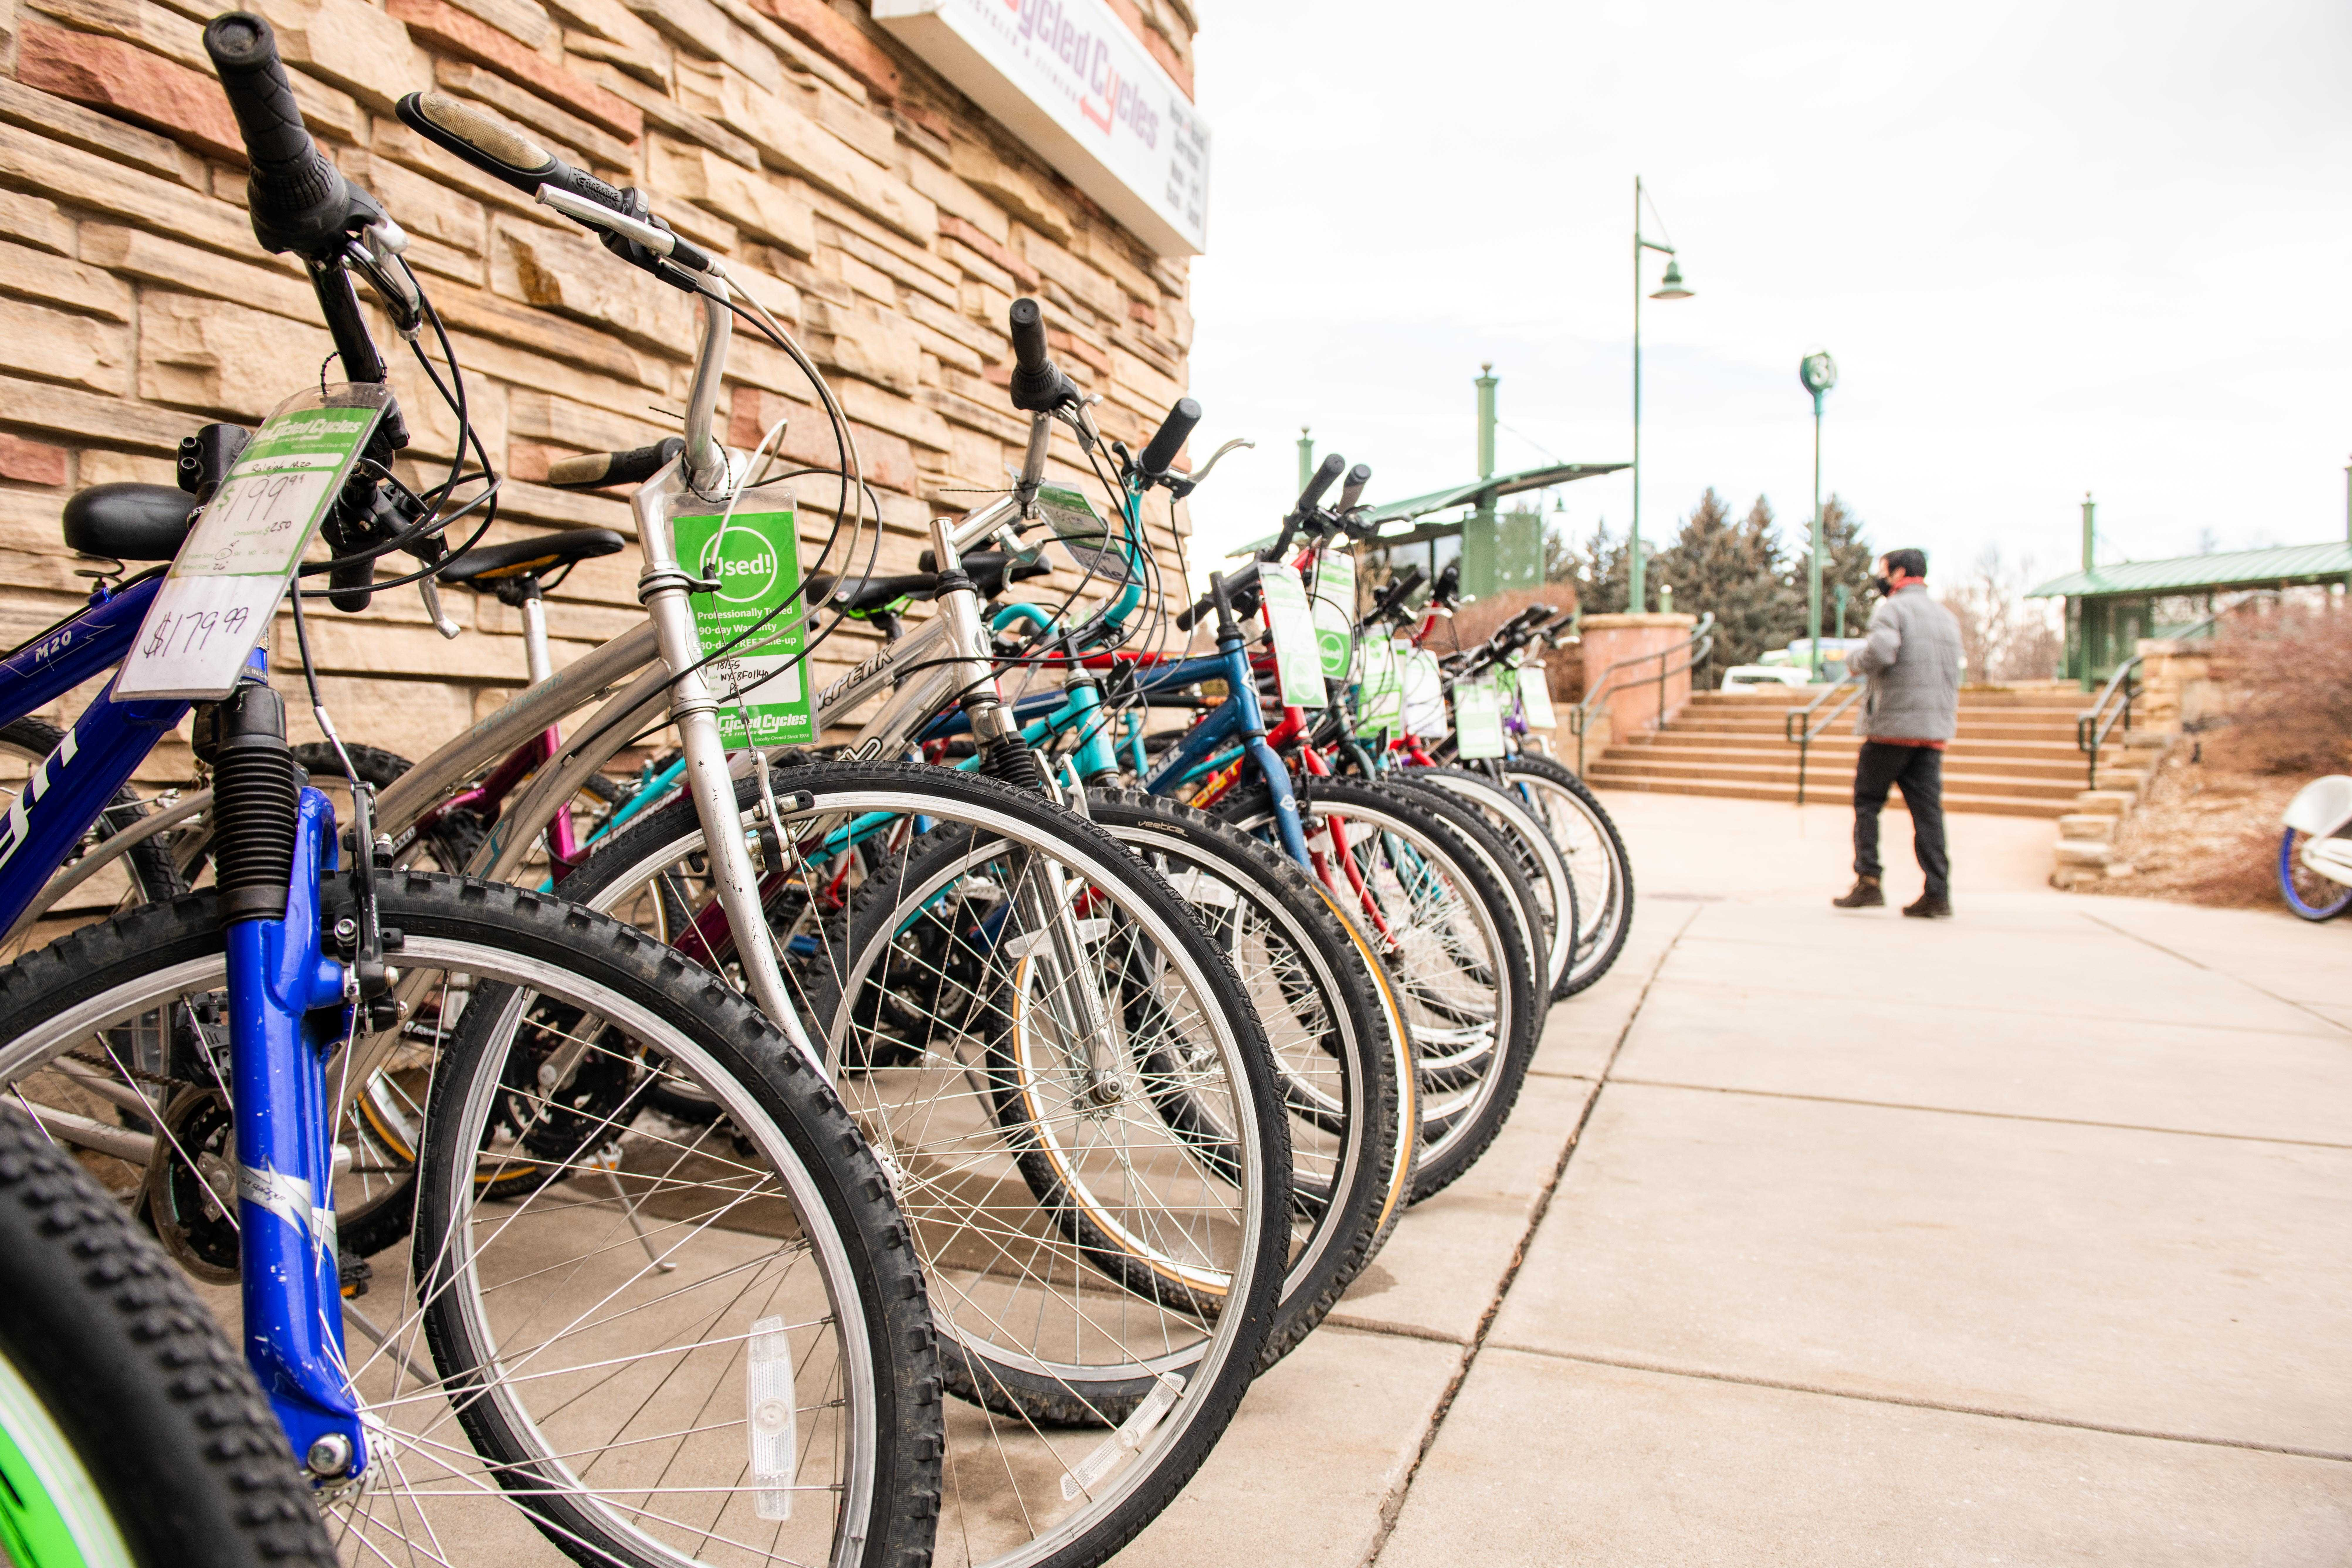 bikes lined up outside Recycled Cycles by Lory Student Center